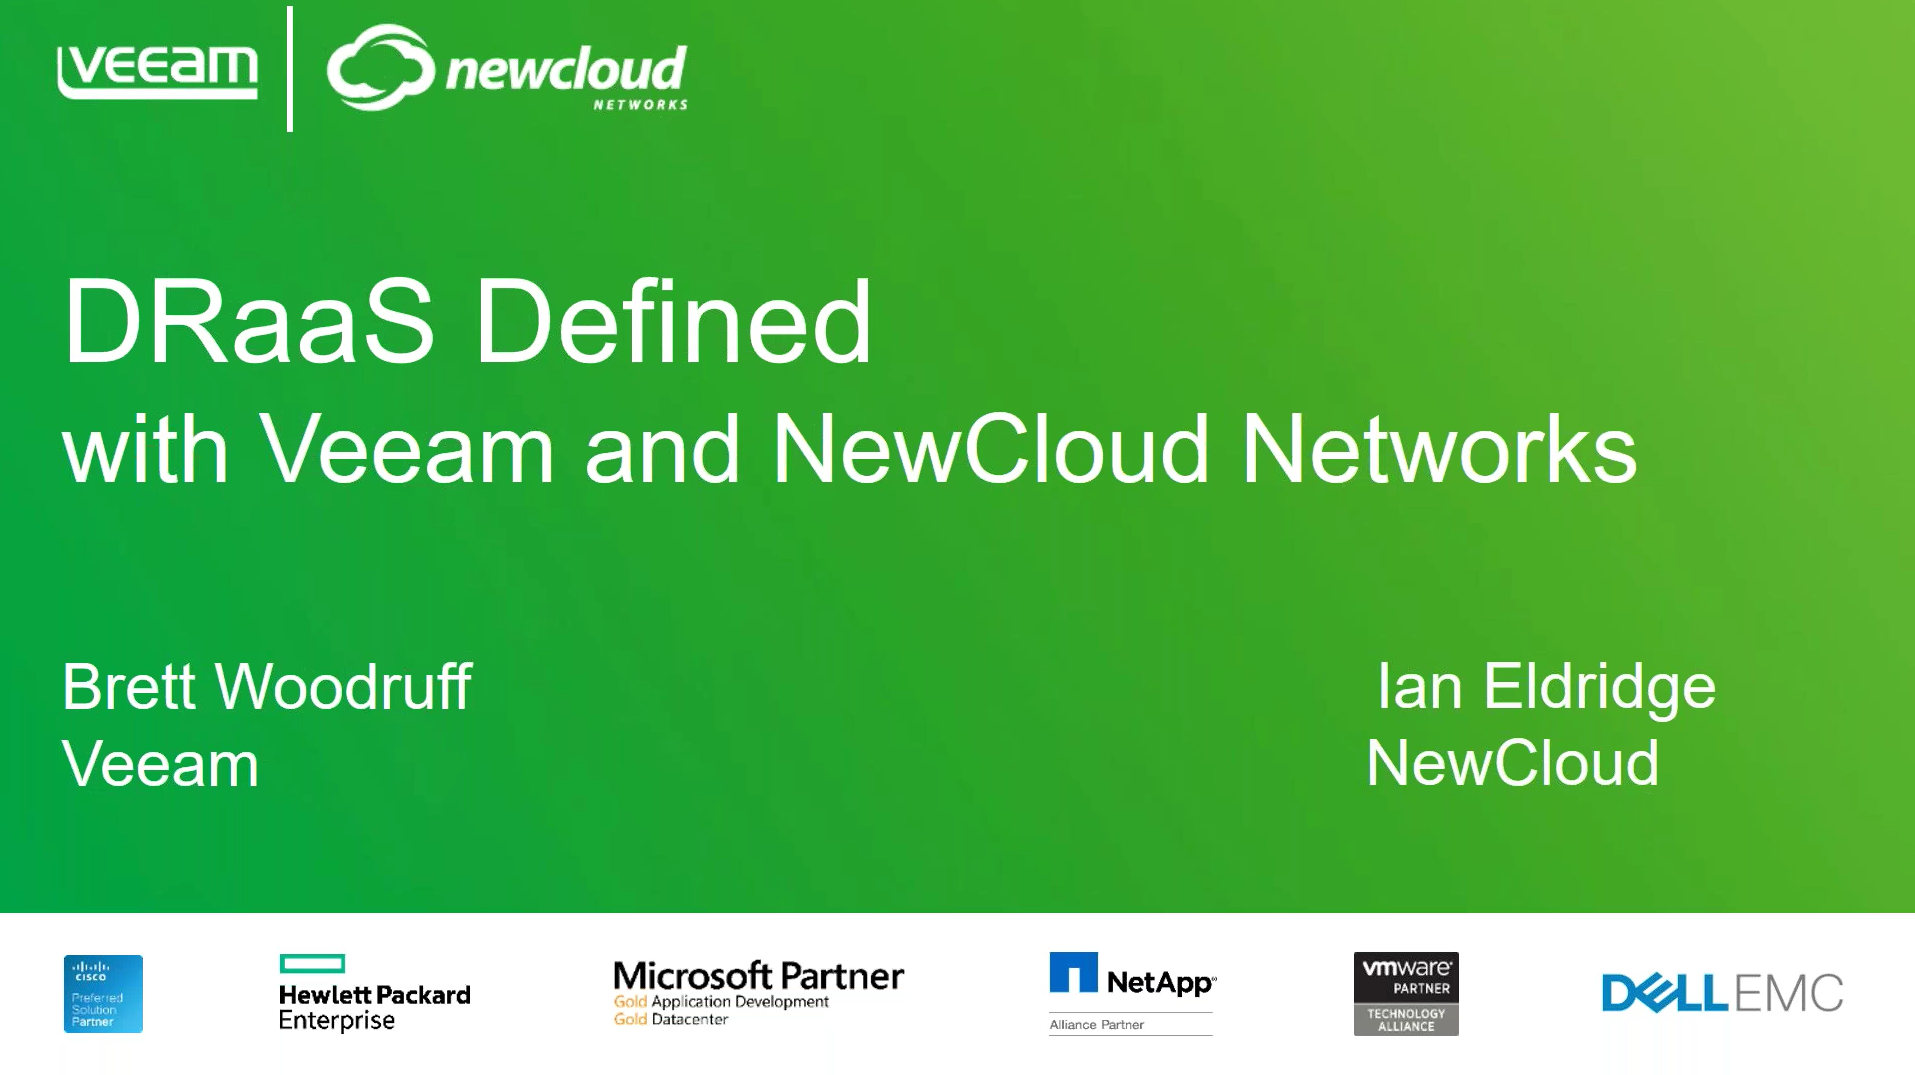 Join Veeam & NewCloud Networks to discuss the future of DRaaS